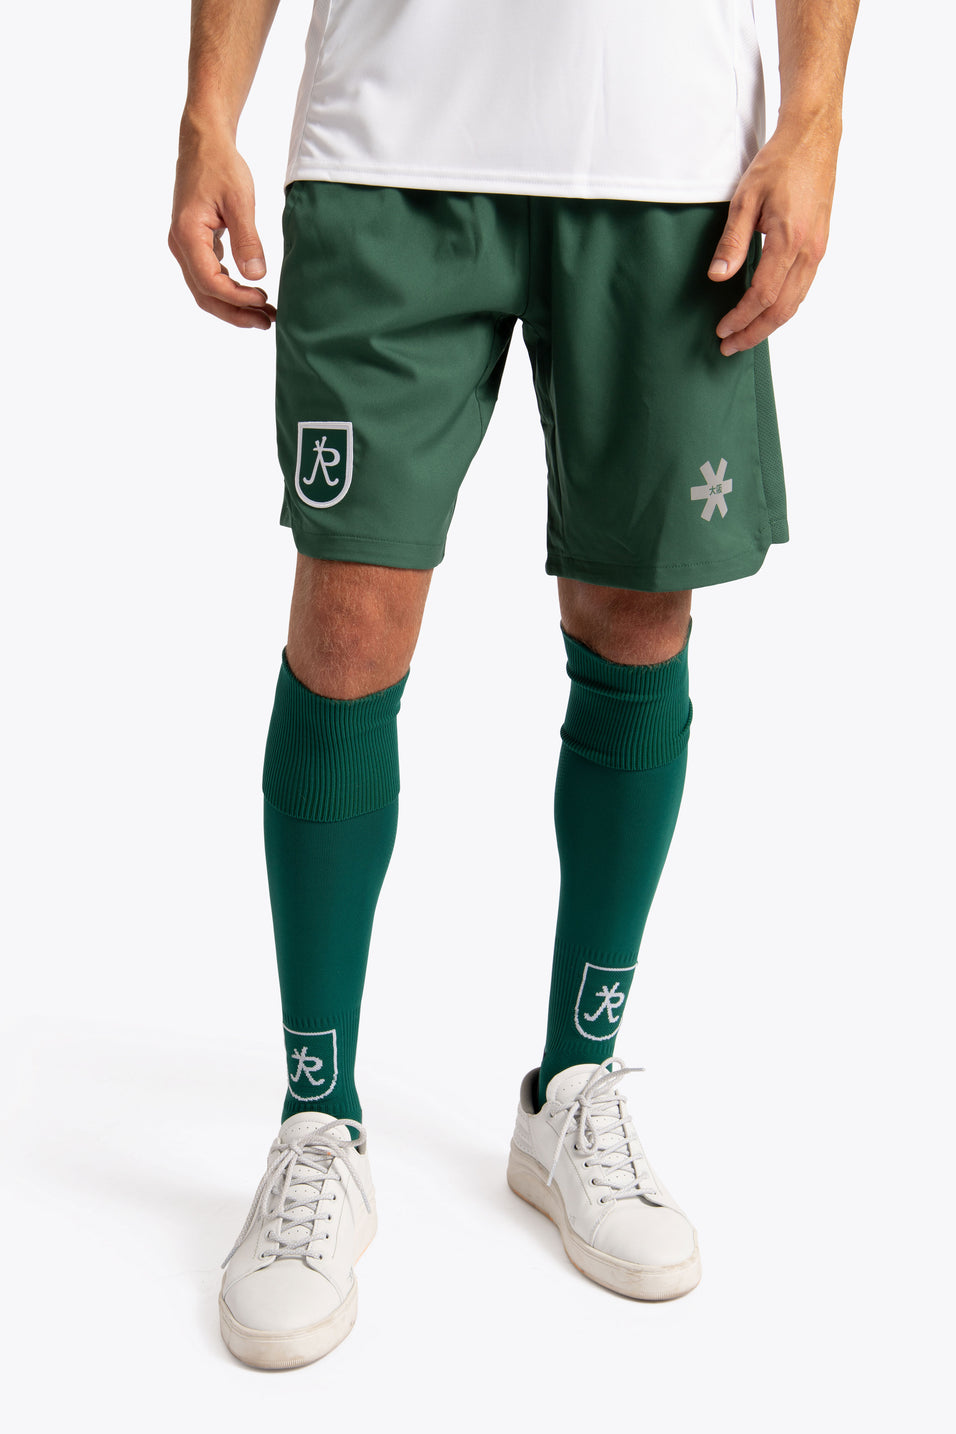 HC Rotterdam Men Short - Dark Green